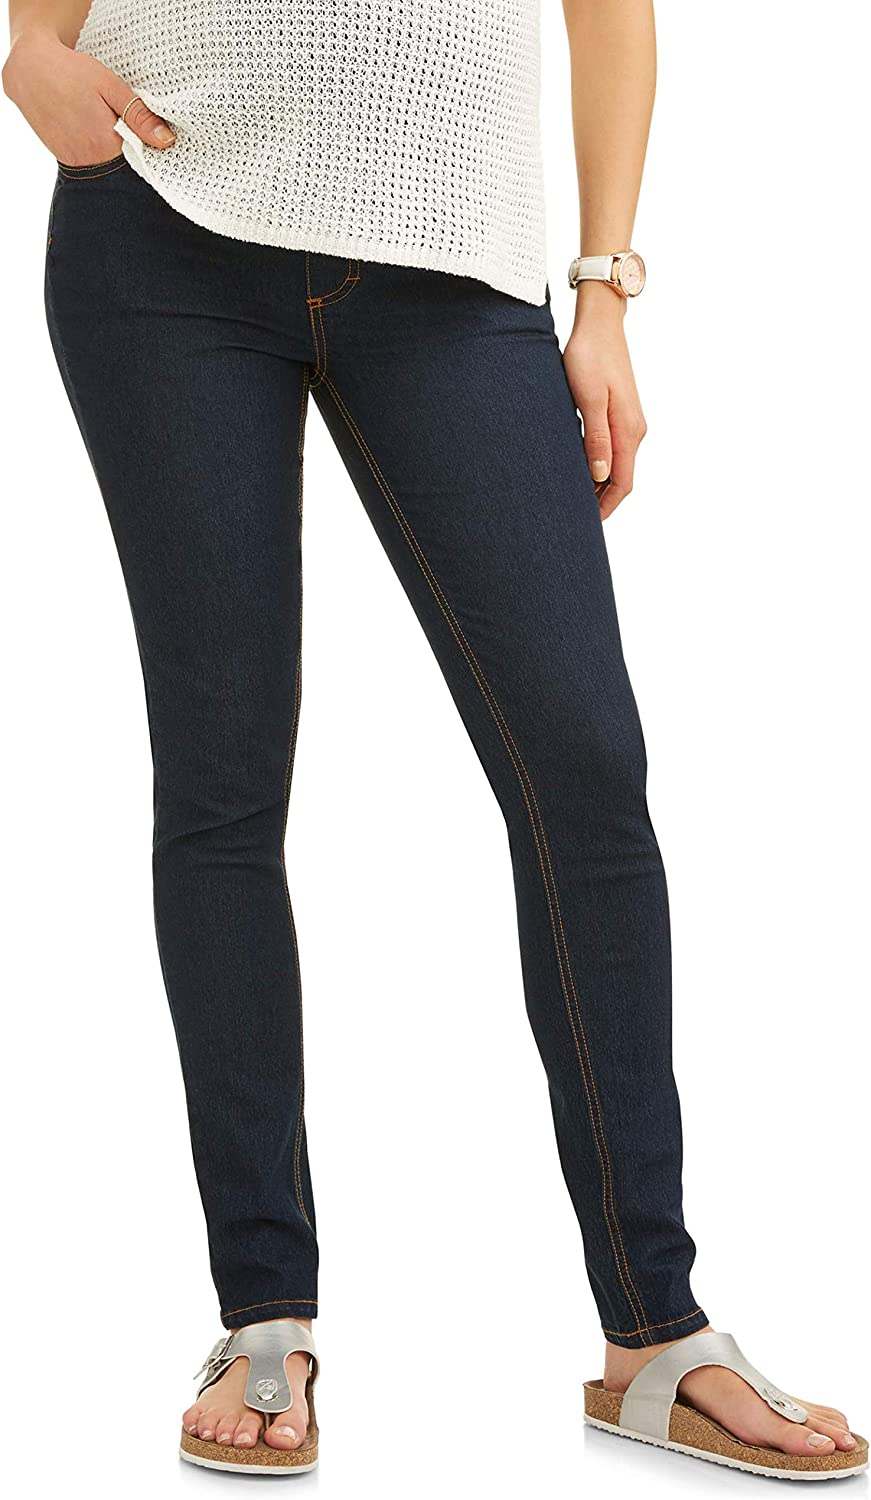 RUMOR HAS IT Maternity Embroidered Pocket Skinny Over The Belly Jeans